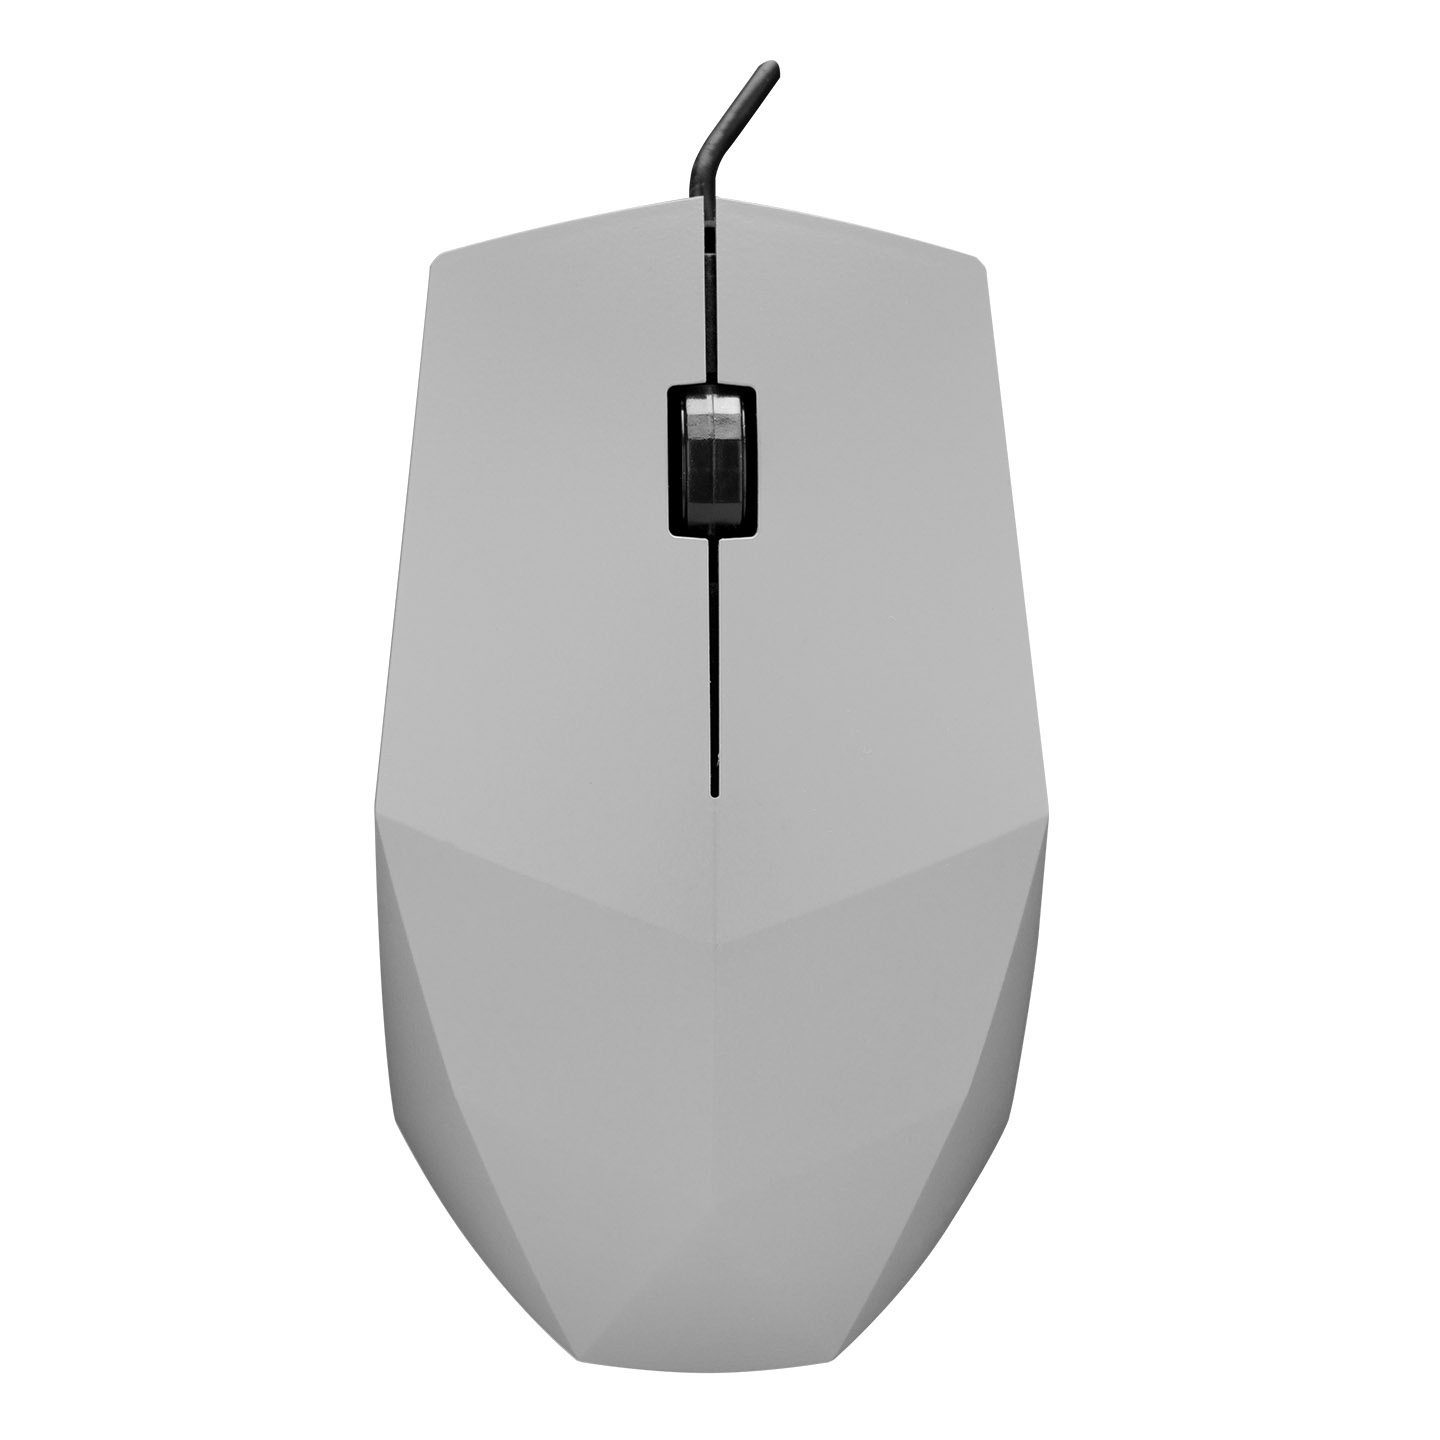 Everest SM-201 Usb Gümüş 1200dpi Optik Kablolu Mouse